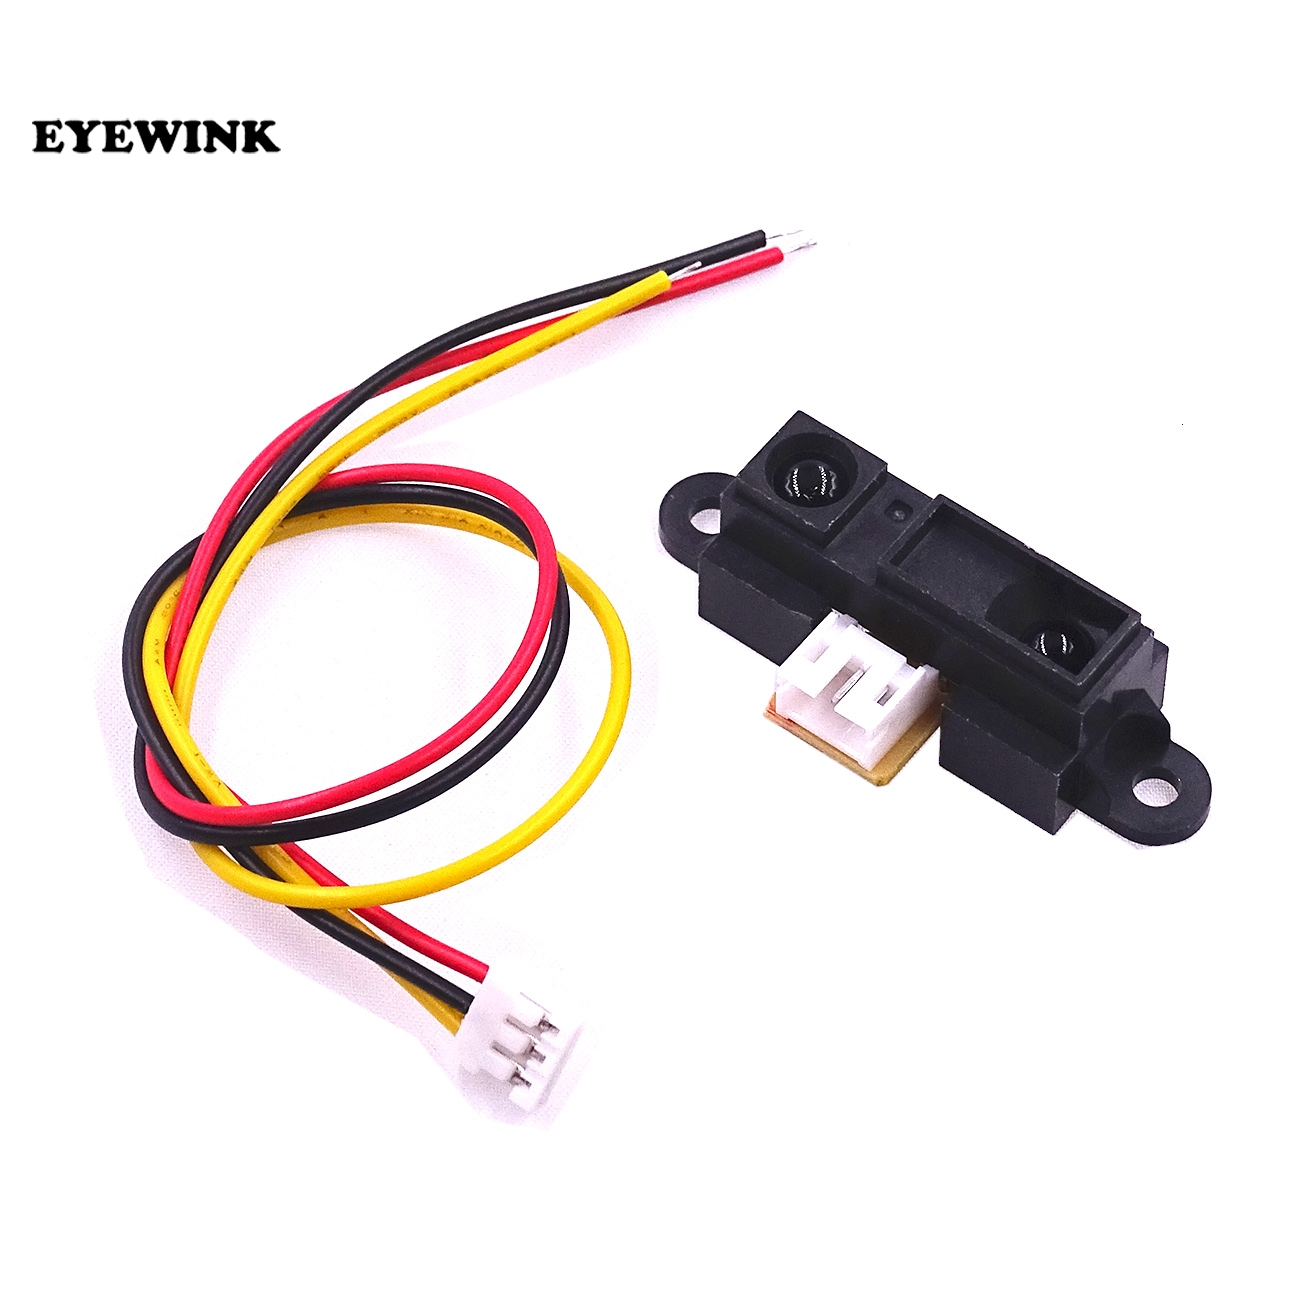 Eyewink Sharp Ir Sensor Gp2y0a21yk0f Measuring Detecting Distance Photo Eye Wiring 10pcs Lot 10 To 80cm With Cable